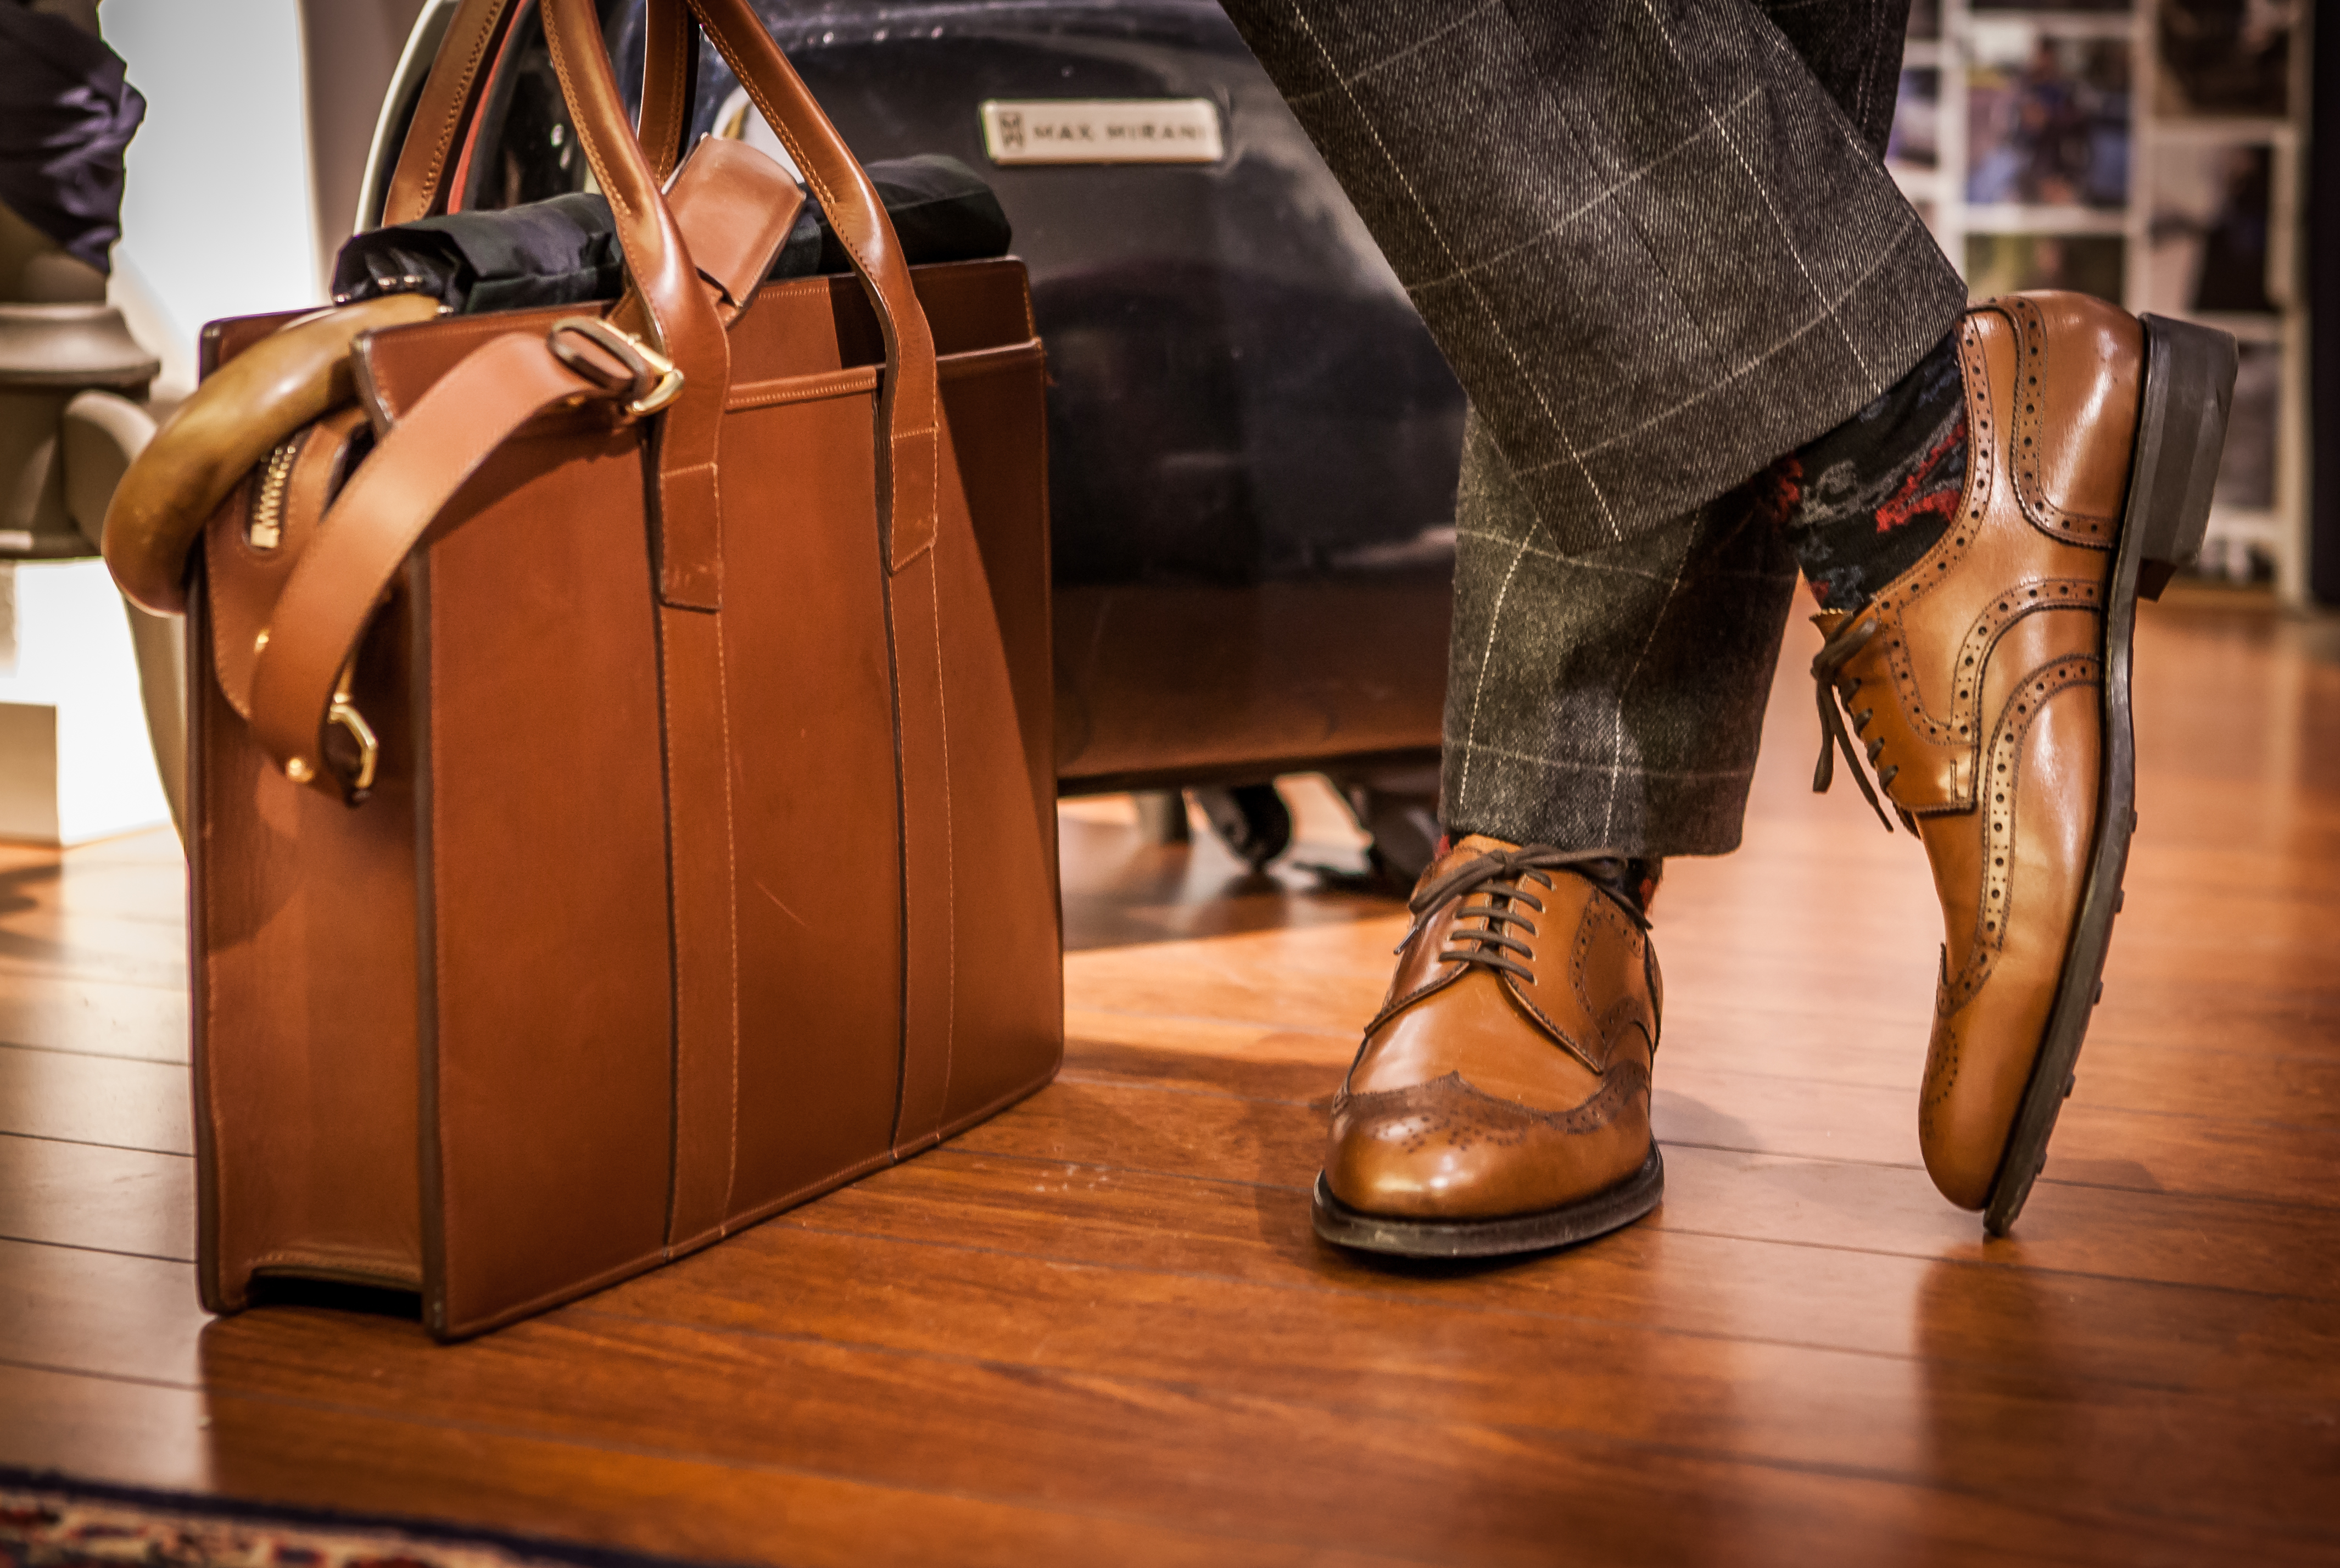 Bespoke from Vass Shoes in Budapest